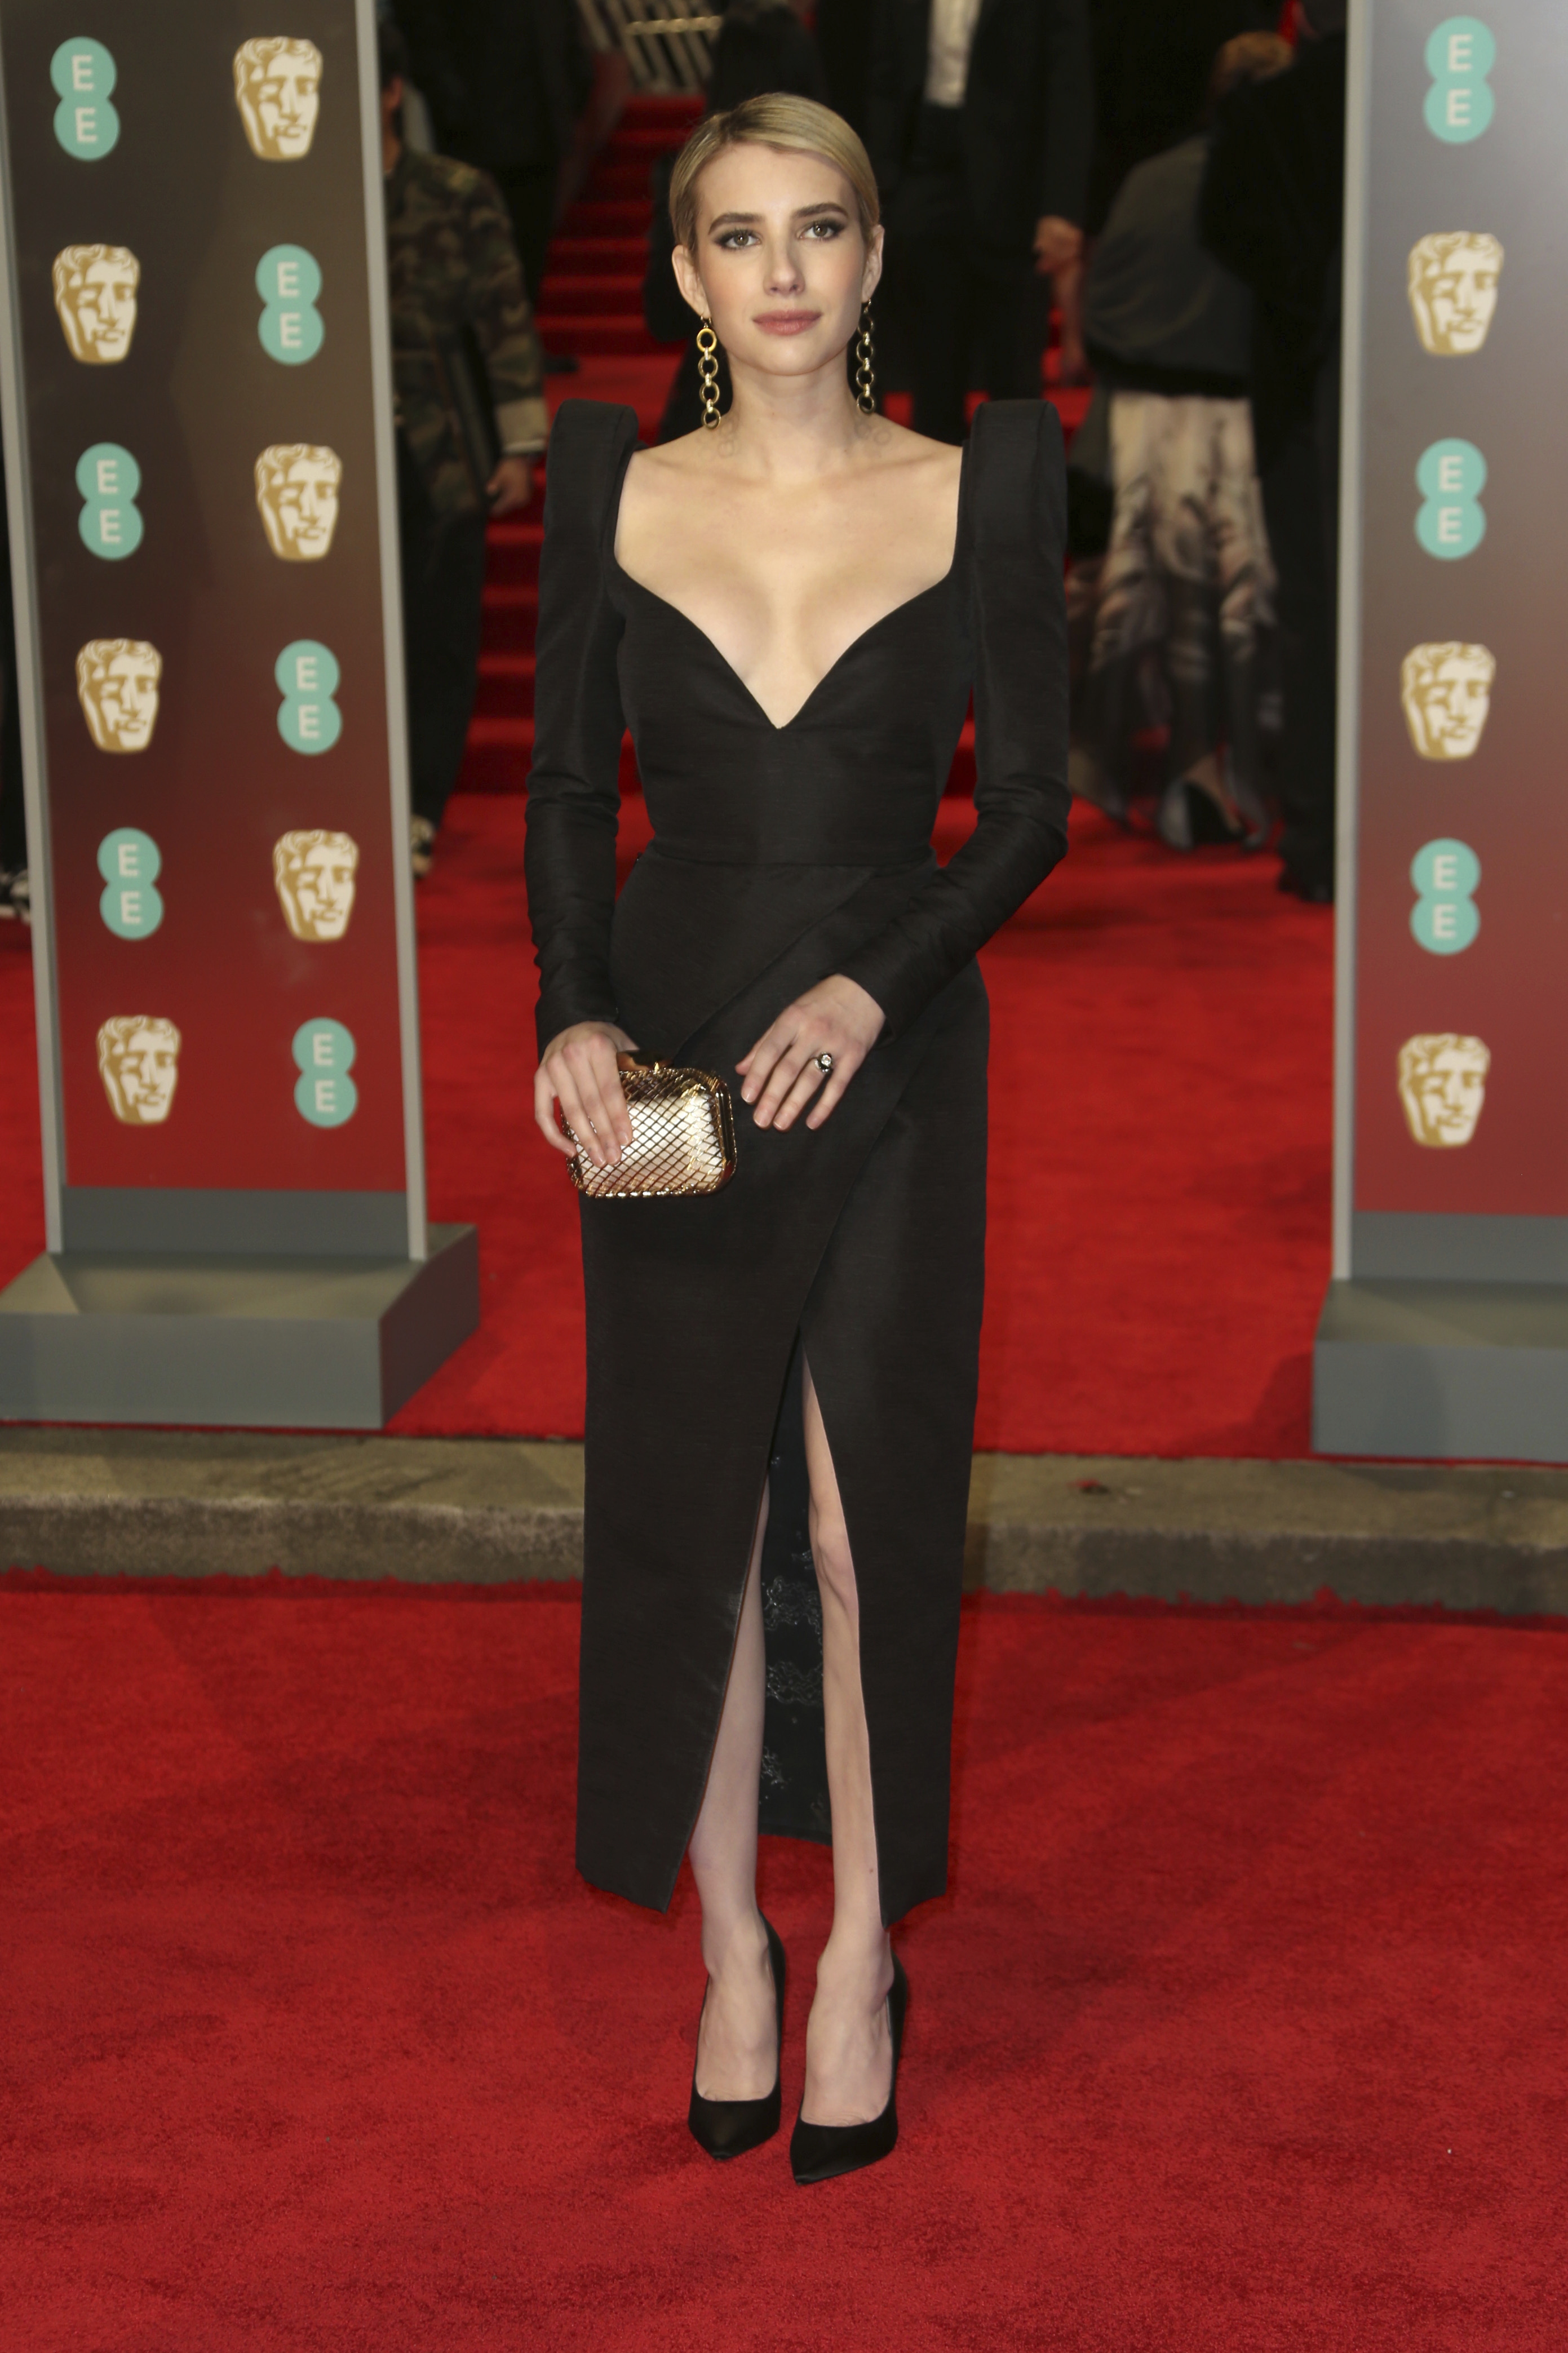 <div class='meta'><div class='origin-logo' data-origin='AP'></div><span class='caption-text' data-credit='Joel C Ryan/Invision/AP'>Actress Emma Roberts poses for photographers upon arrival at the BAFTA 2018 Awards in London, Sunday, Feb. 18, 2018.</span></div>